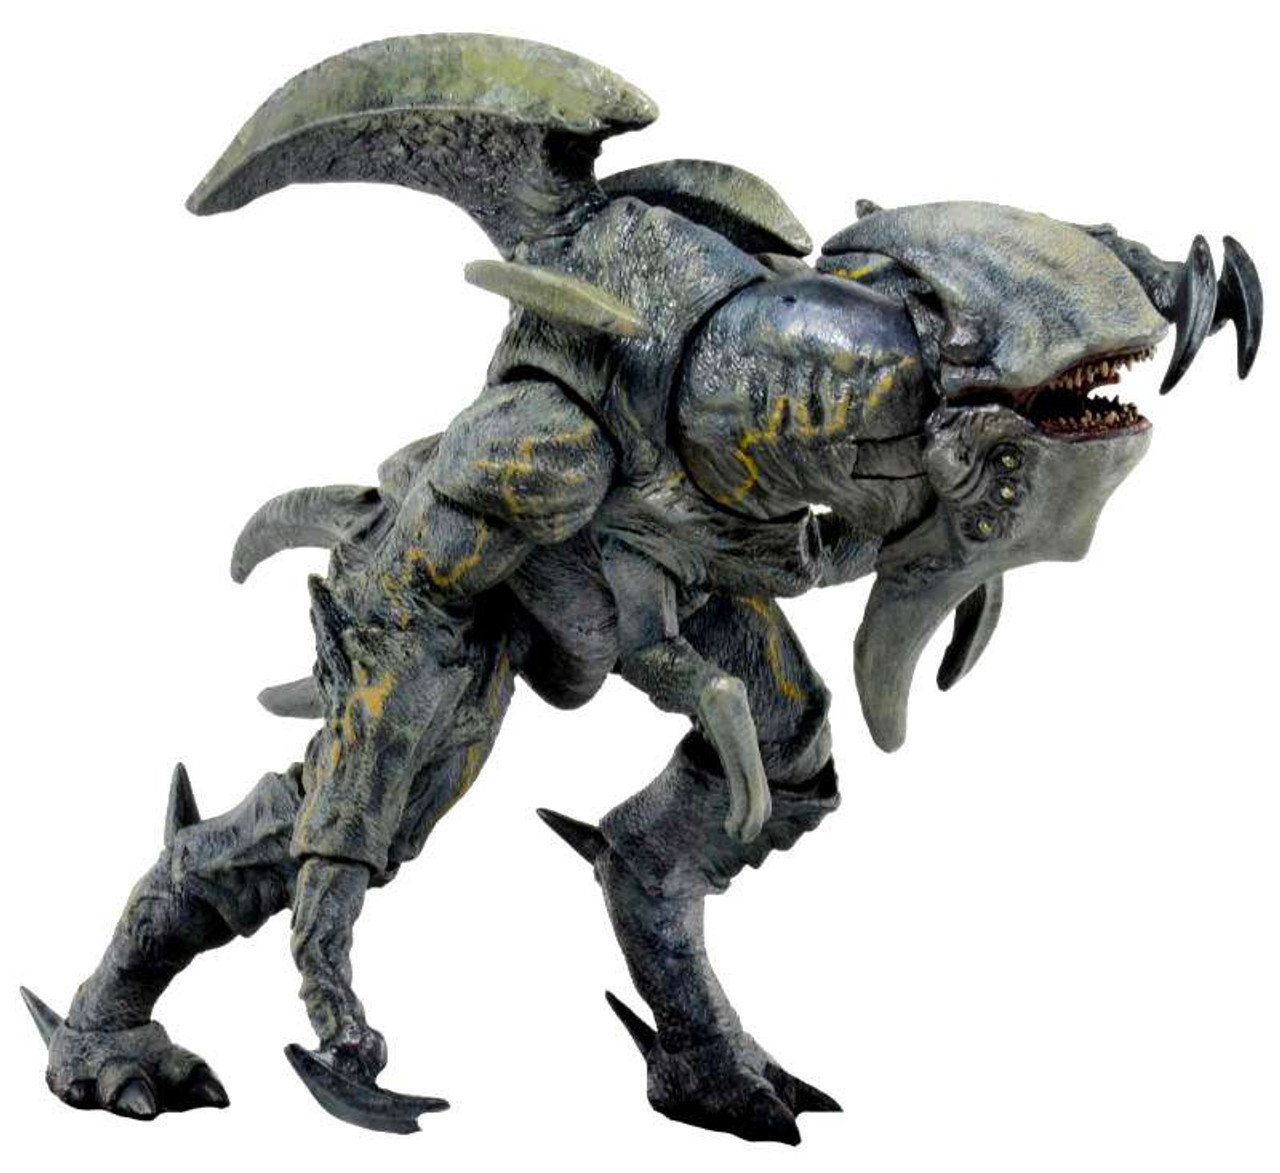 NECA Pacific Rim Kaiju Mutavore 7 Action Figure - ToyWiz Pacific Rim Kaiju Category 3